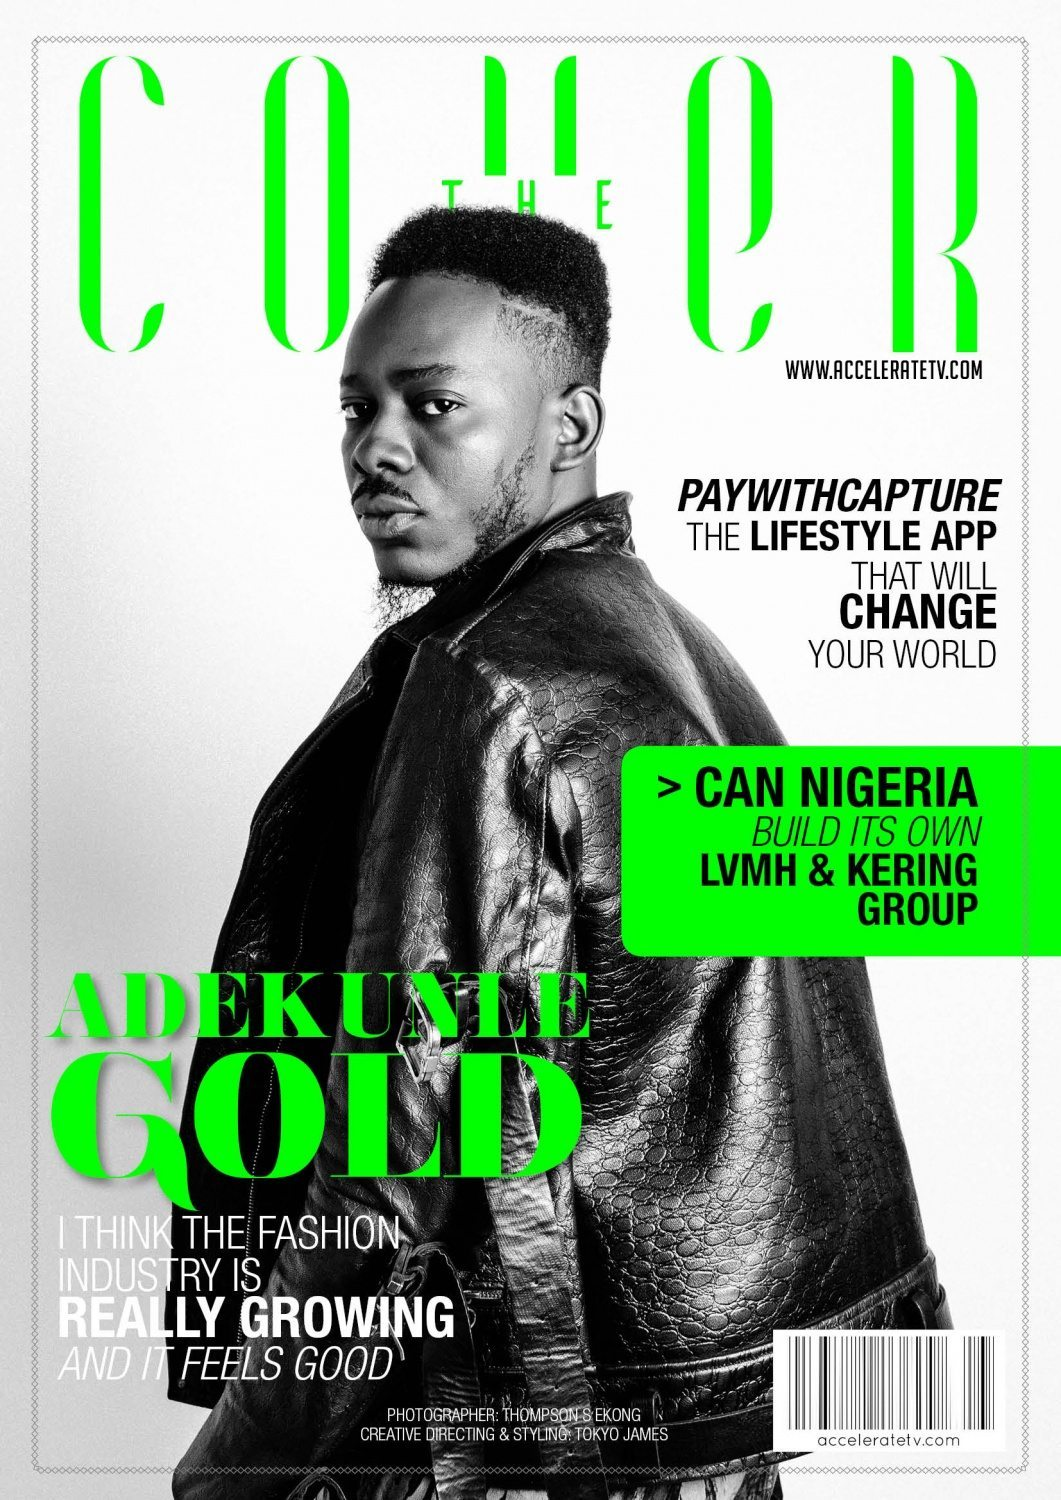 Adekunle Gold on The Cover for Accelerate